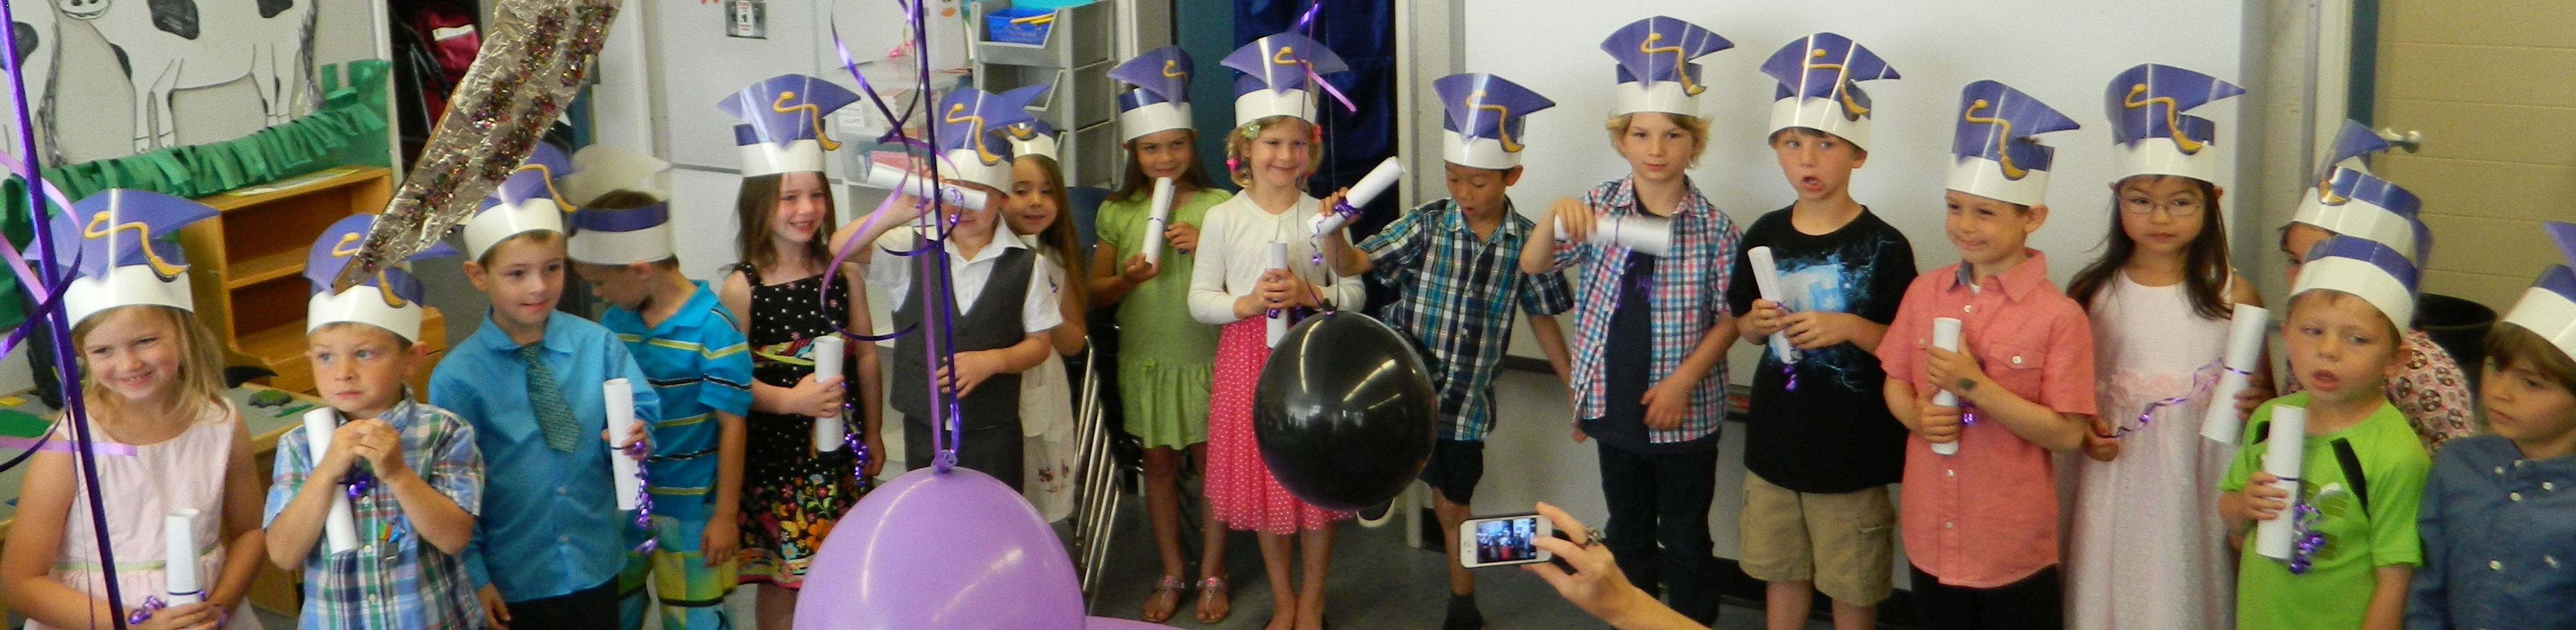 Kindergarten Vignettes: Graduation Day